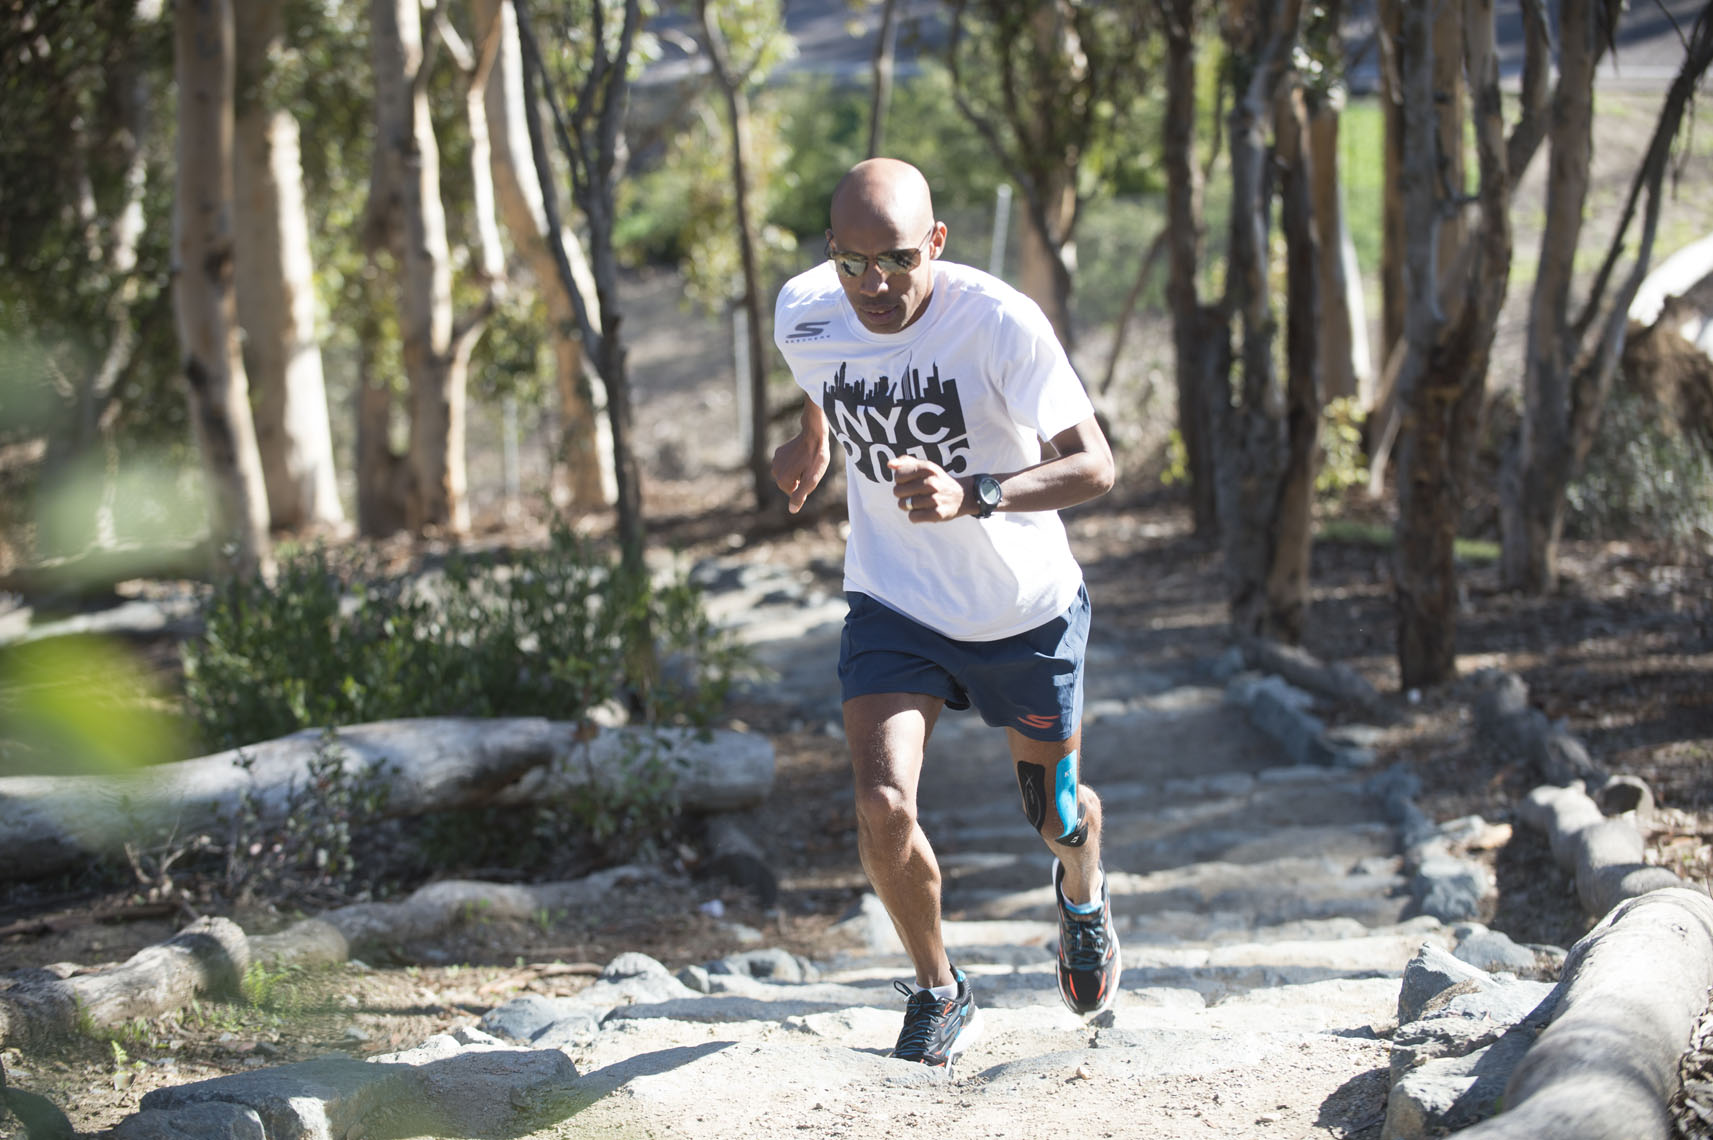 KT Tape, Meb Keflezighi in San Diego, CA